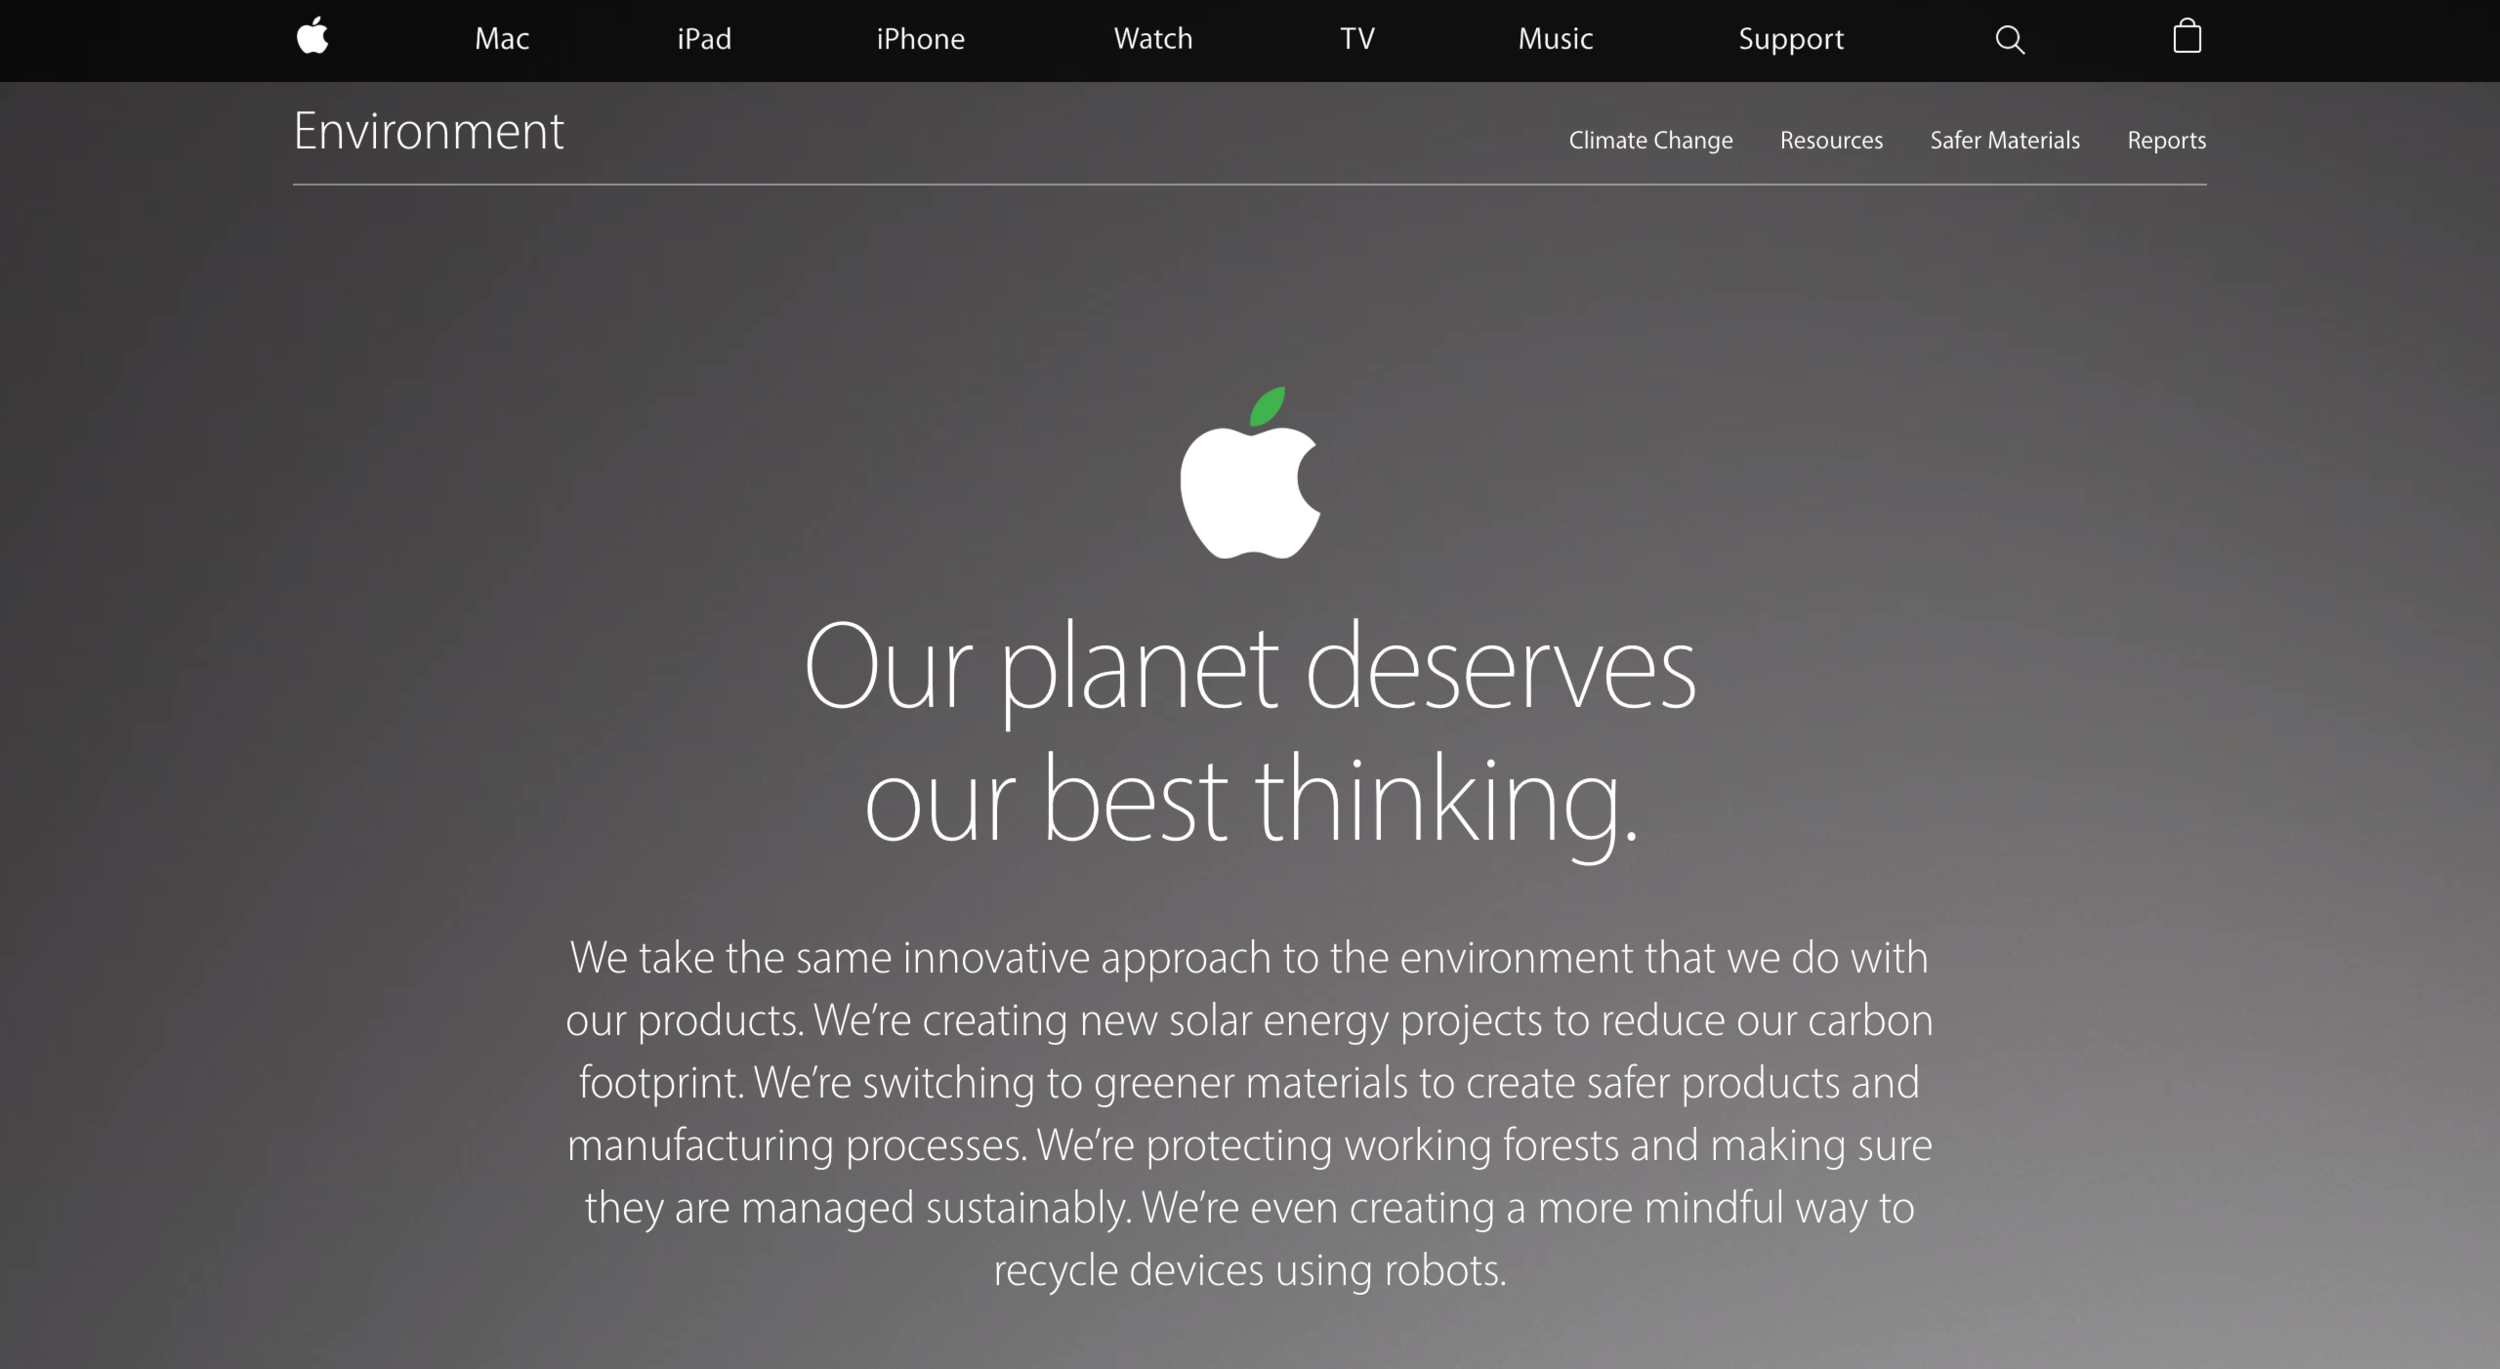 Apple's Environment section